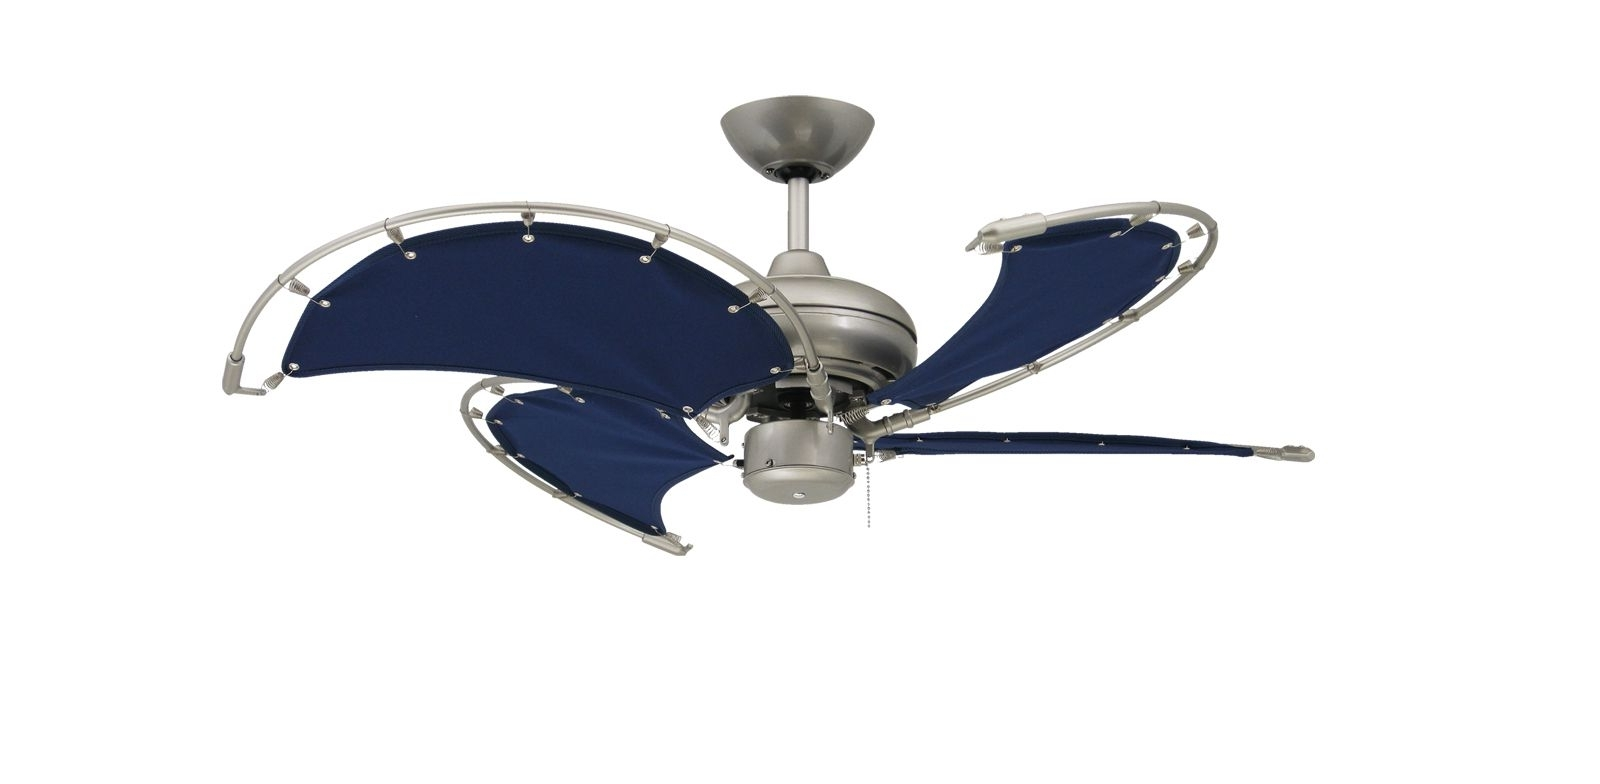 8235 Dream Decor With Regard To Current Unique Outdoor Ceiling Fans With Lights (Gallery 15 of 20)